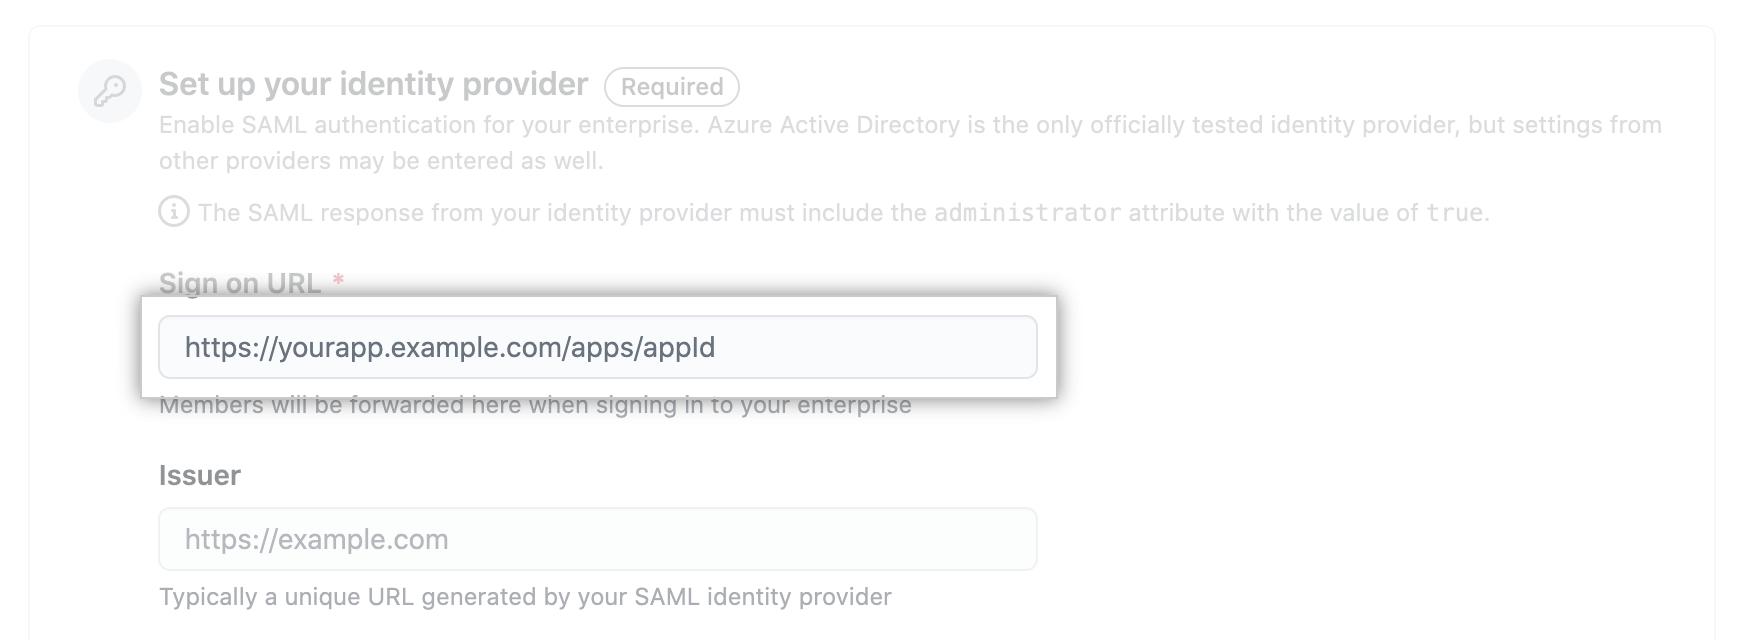 Text field for SAML IdP's sign-on URL